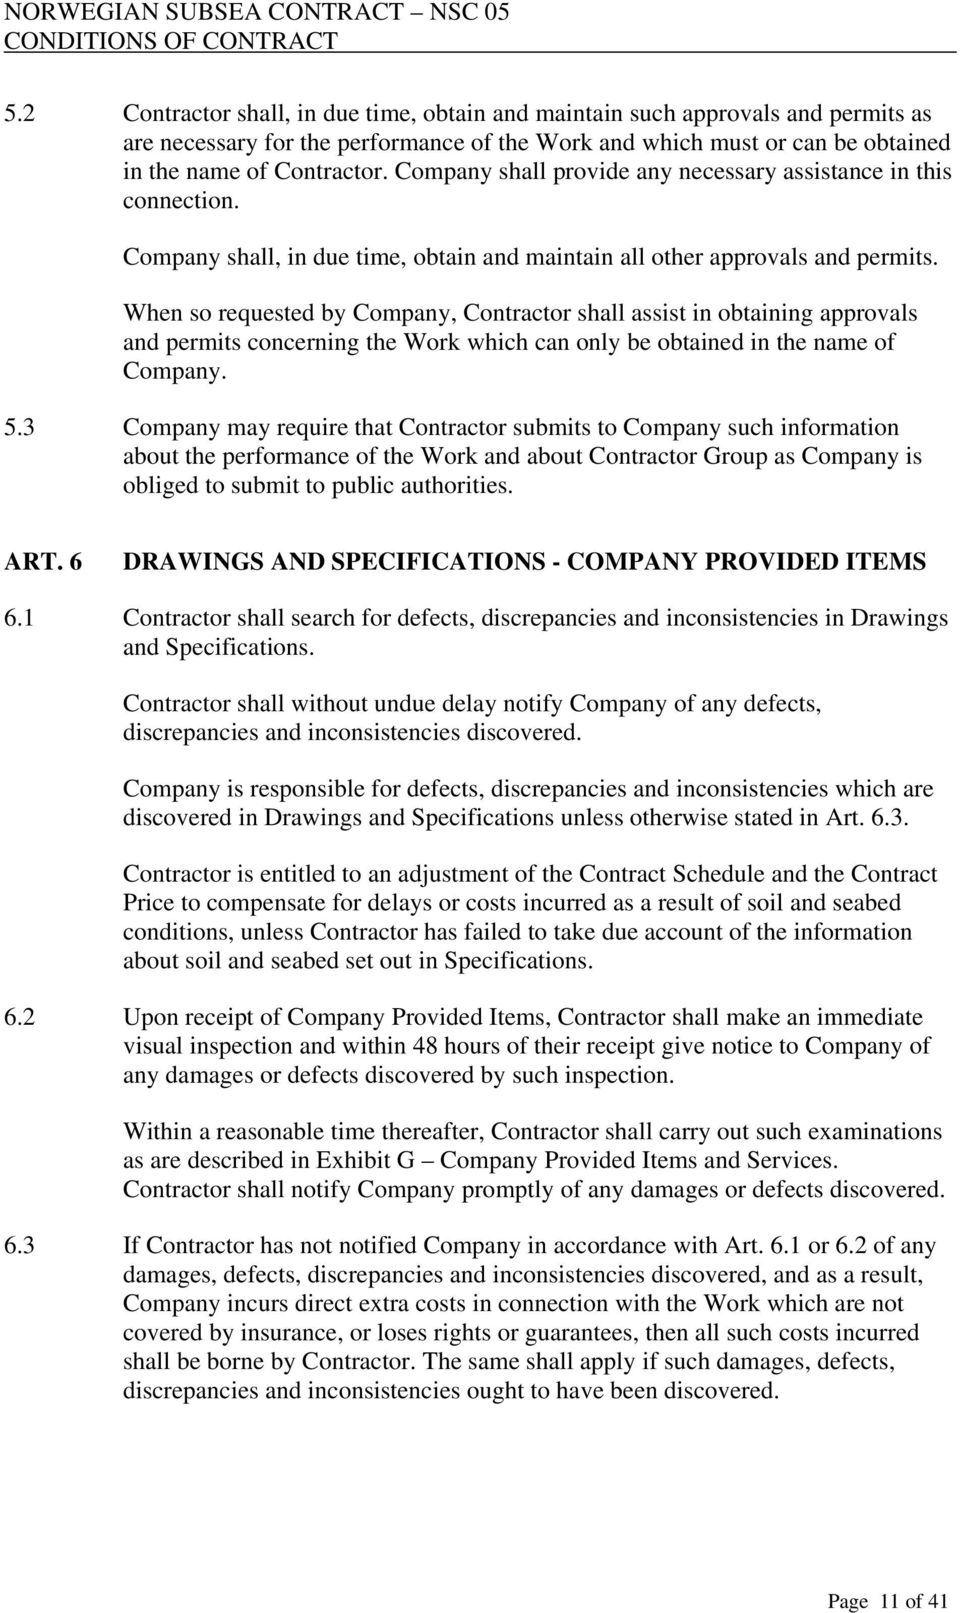 process analysis paper examples